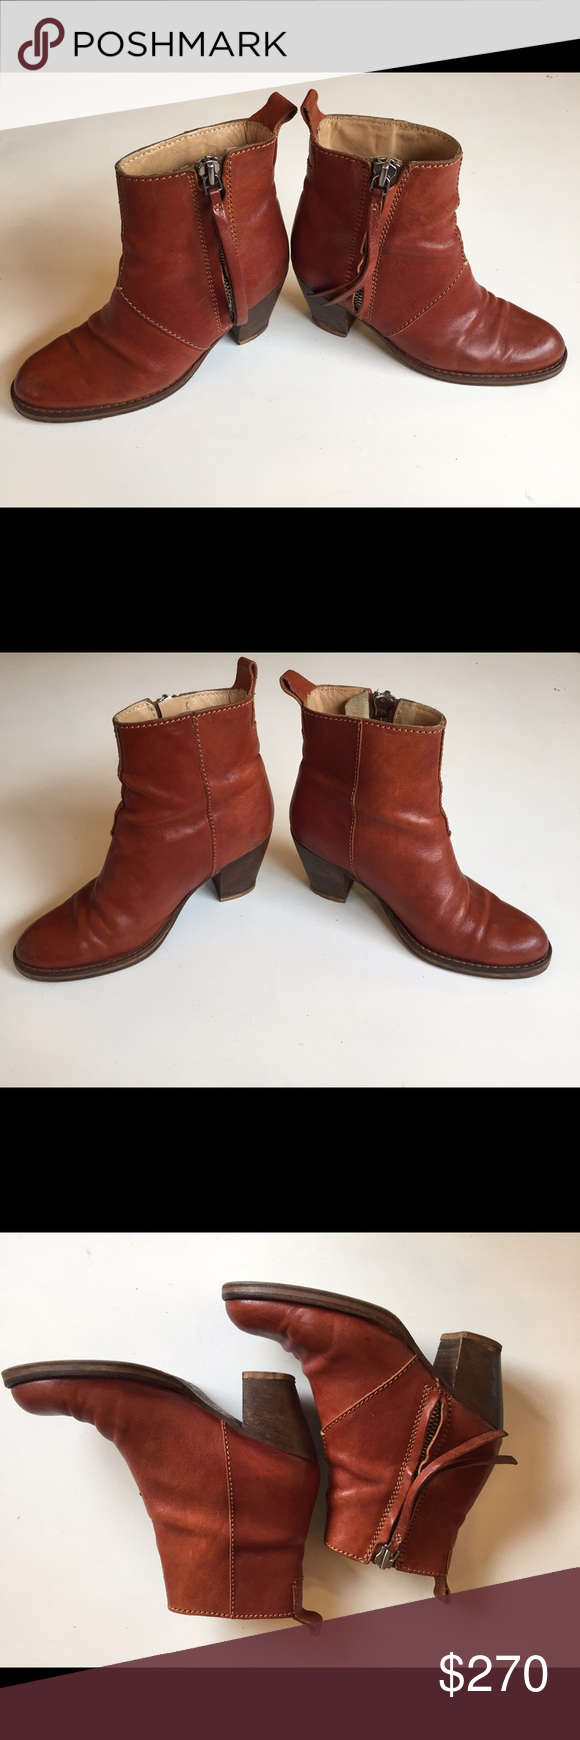 """Acne Pistol Boots Cinnamon leather Acne round-toe Pistol ankle boots with tonal stitching throughout, stacked block heels and zip closures at sides. Color: Brown Shoe Size: 6 Condition: Very Good. Resoled; light scuffing at outer soles; minor blemishes at leather; light wear at insoles. Measurements: Heels 3"""" Designer: Acne Acne Shoes Ankle Boots & Booties"""